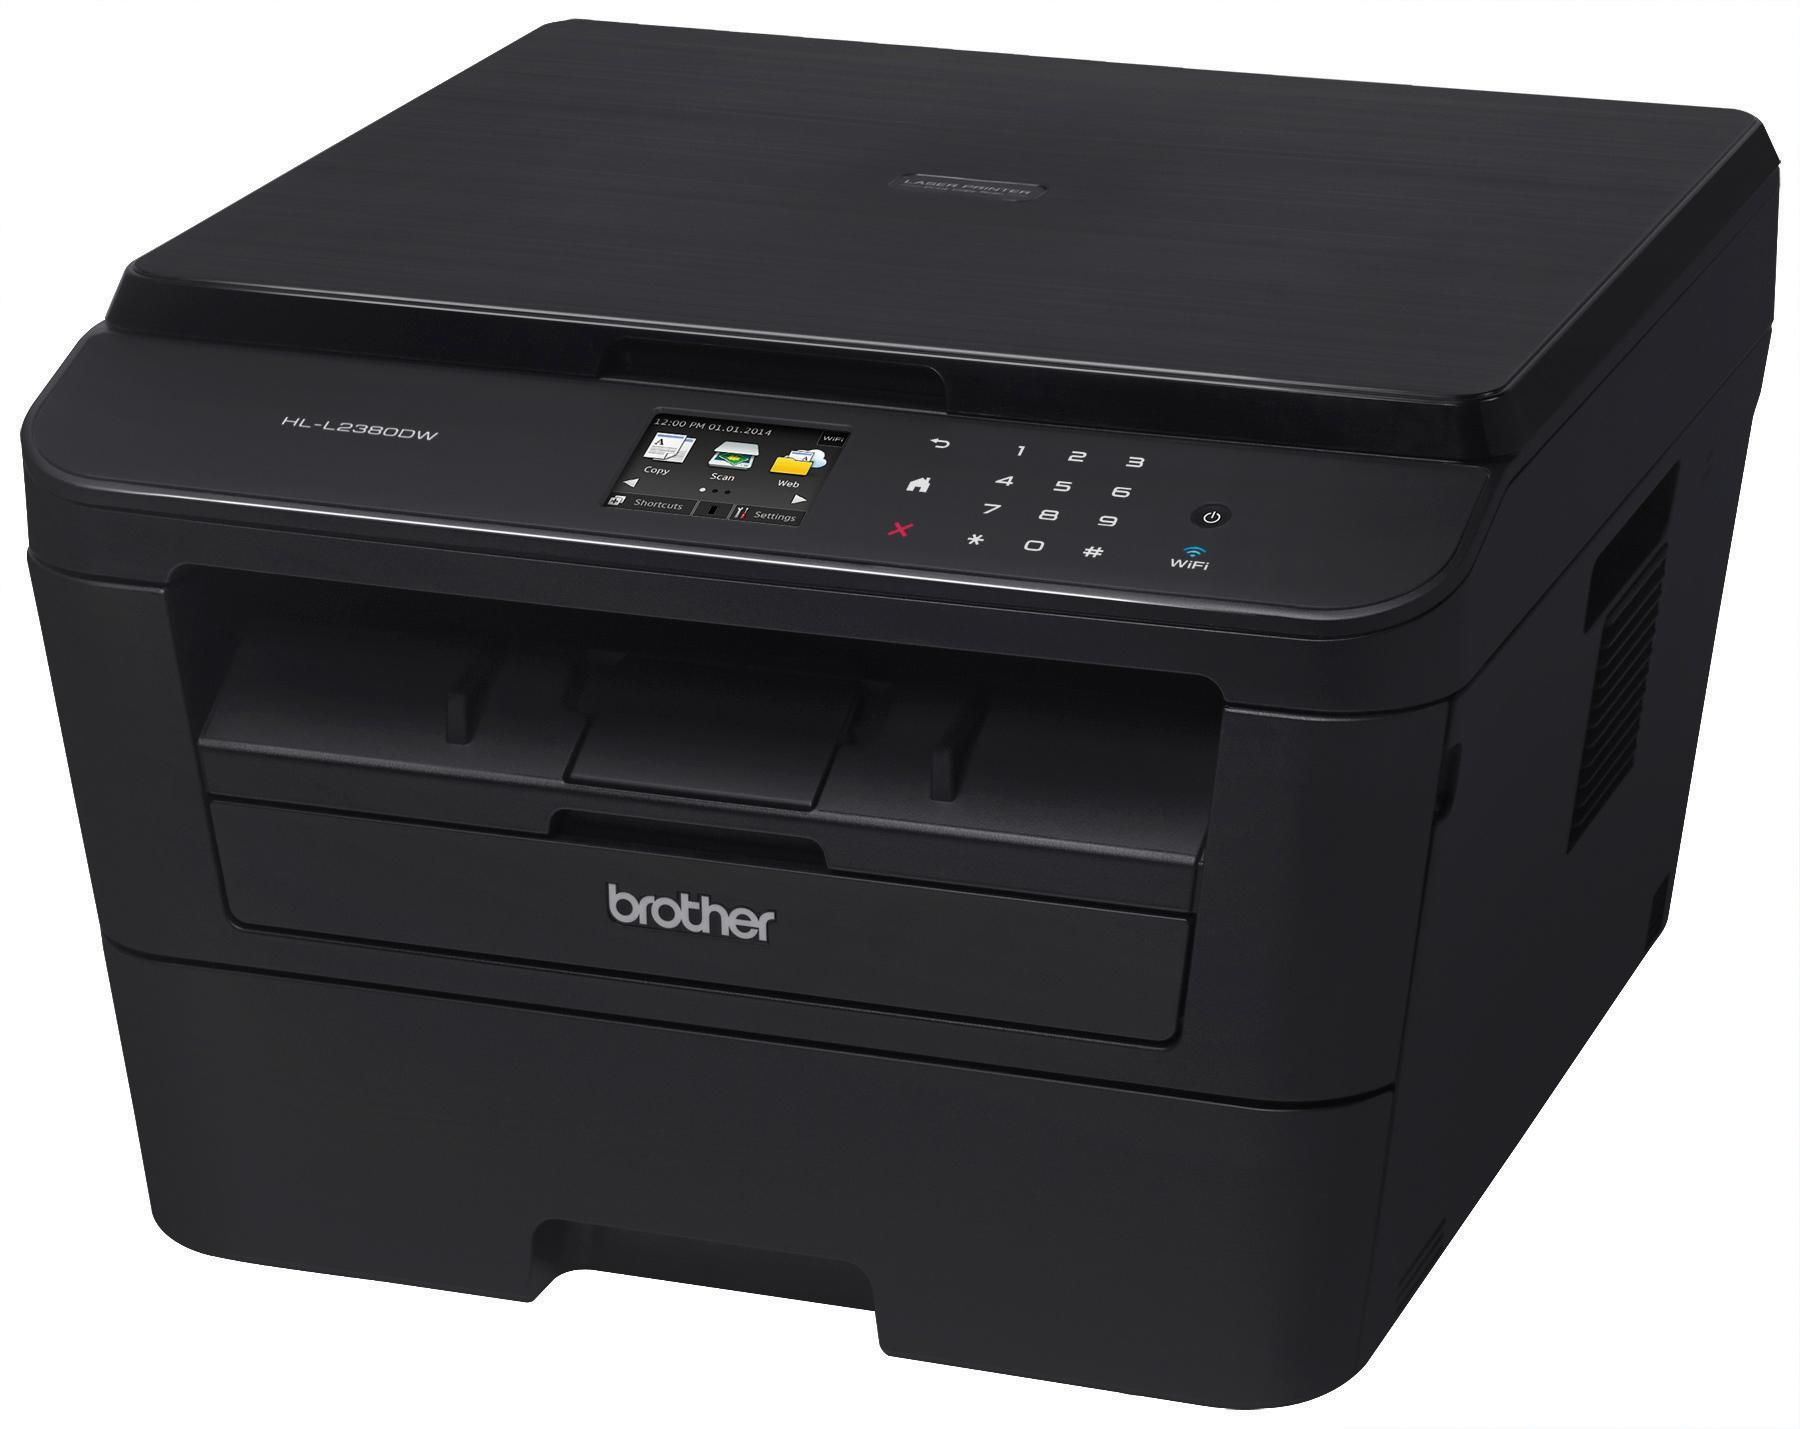 Amazon Com Brother Hl L2340dw Compact Laser Printer With Duplex Printing And Wireless Networking Electronics Laser Printer Printer Multifunction Printer